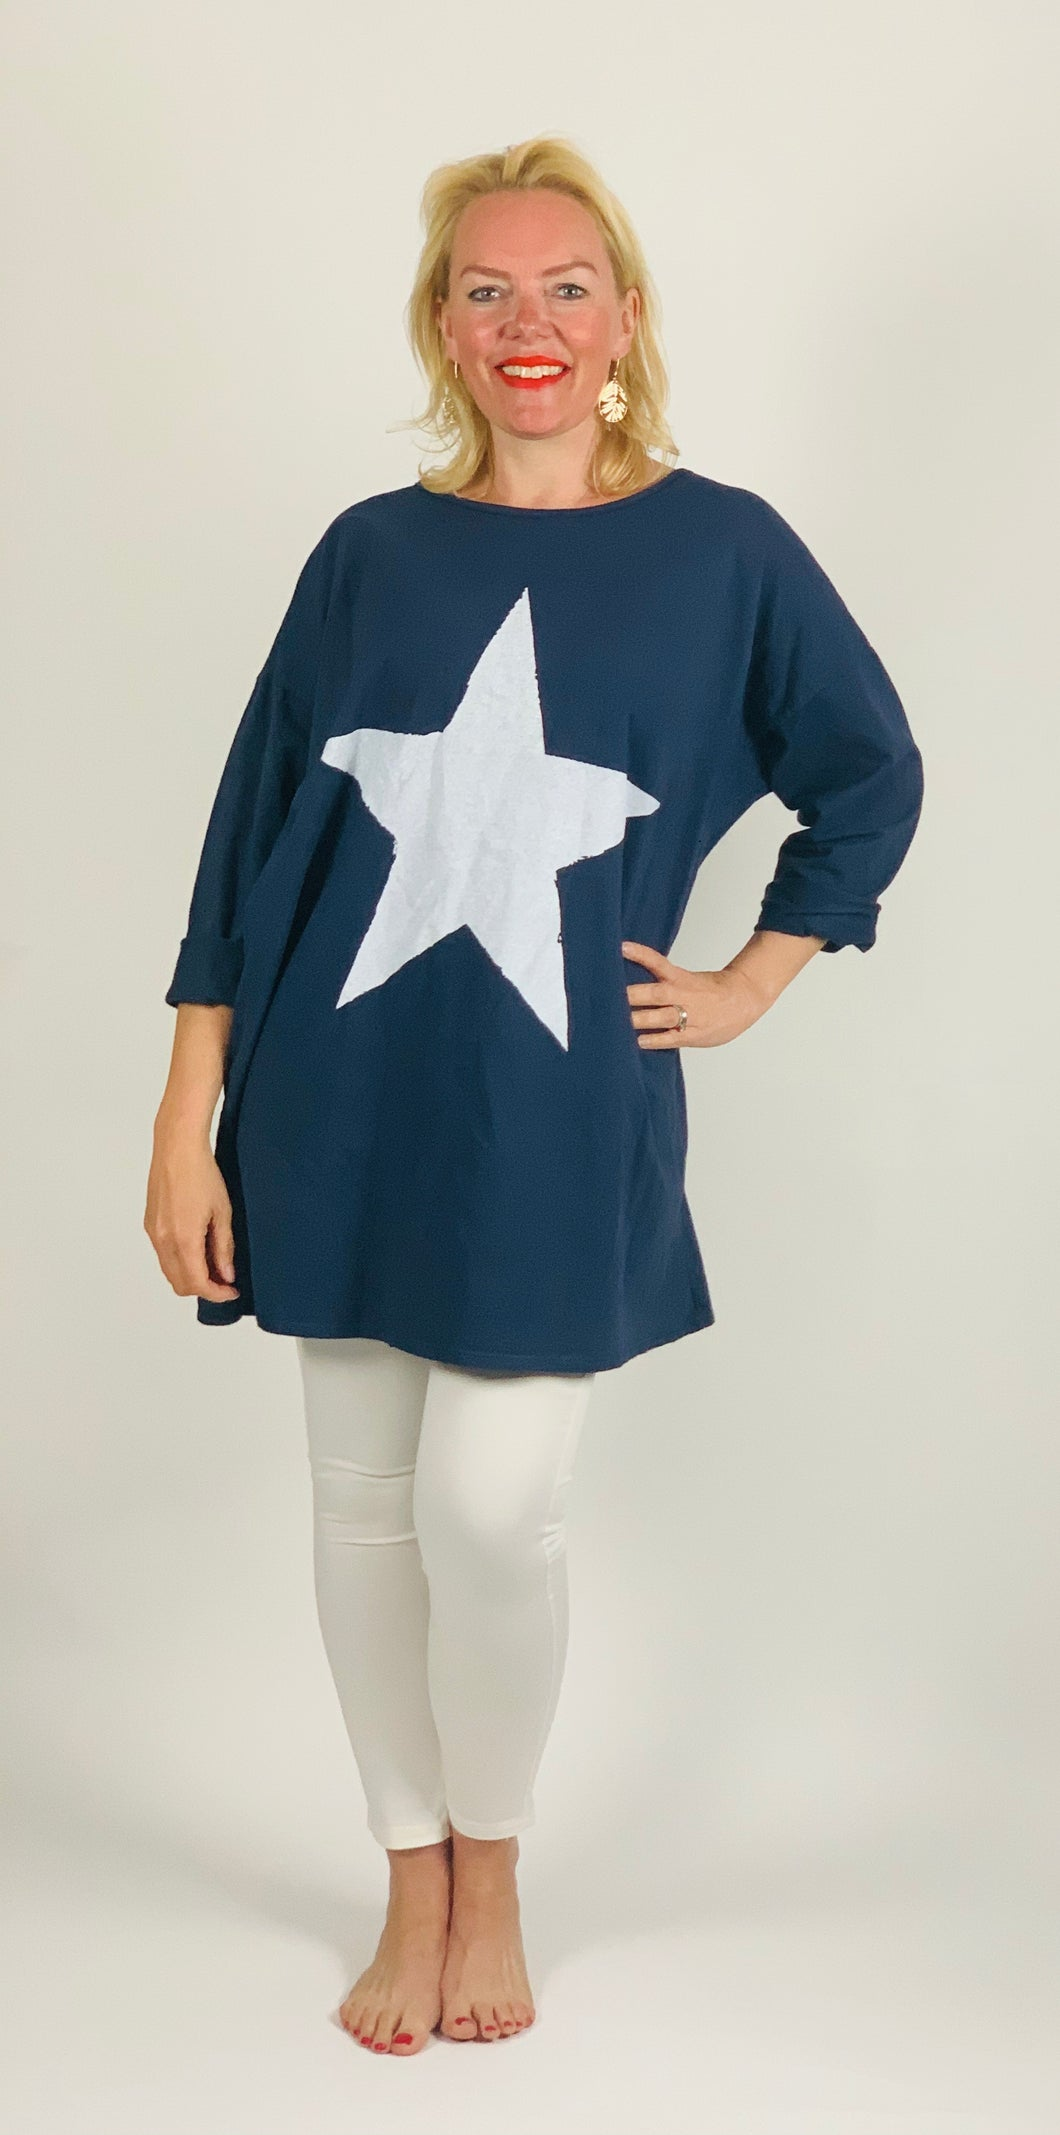 Slouchy Star Sweatshirt - chichappensboutique